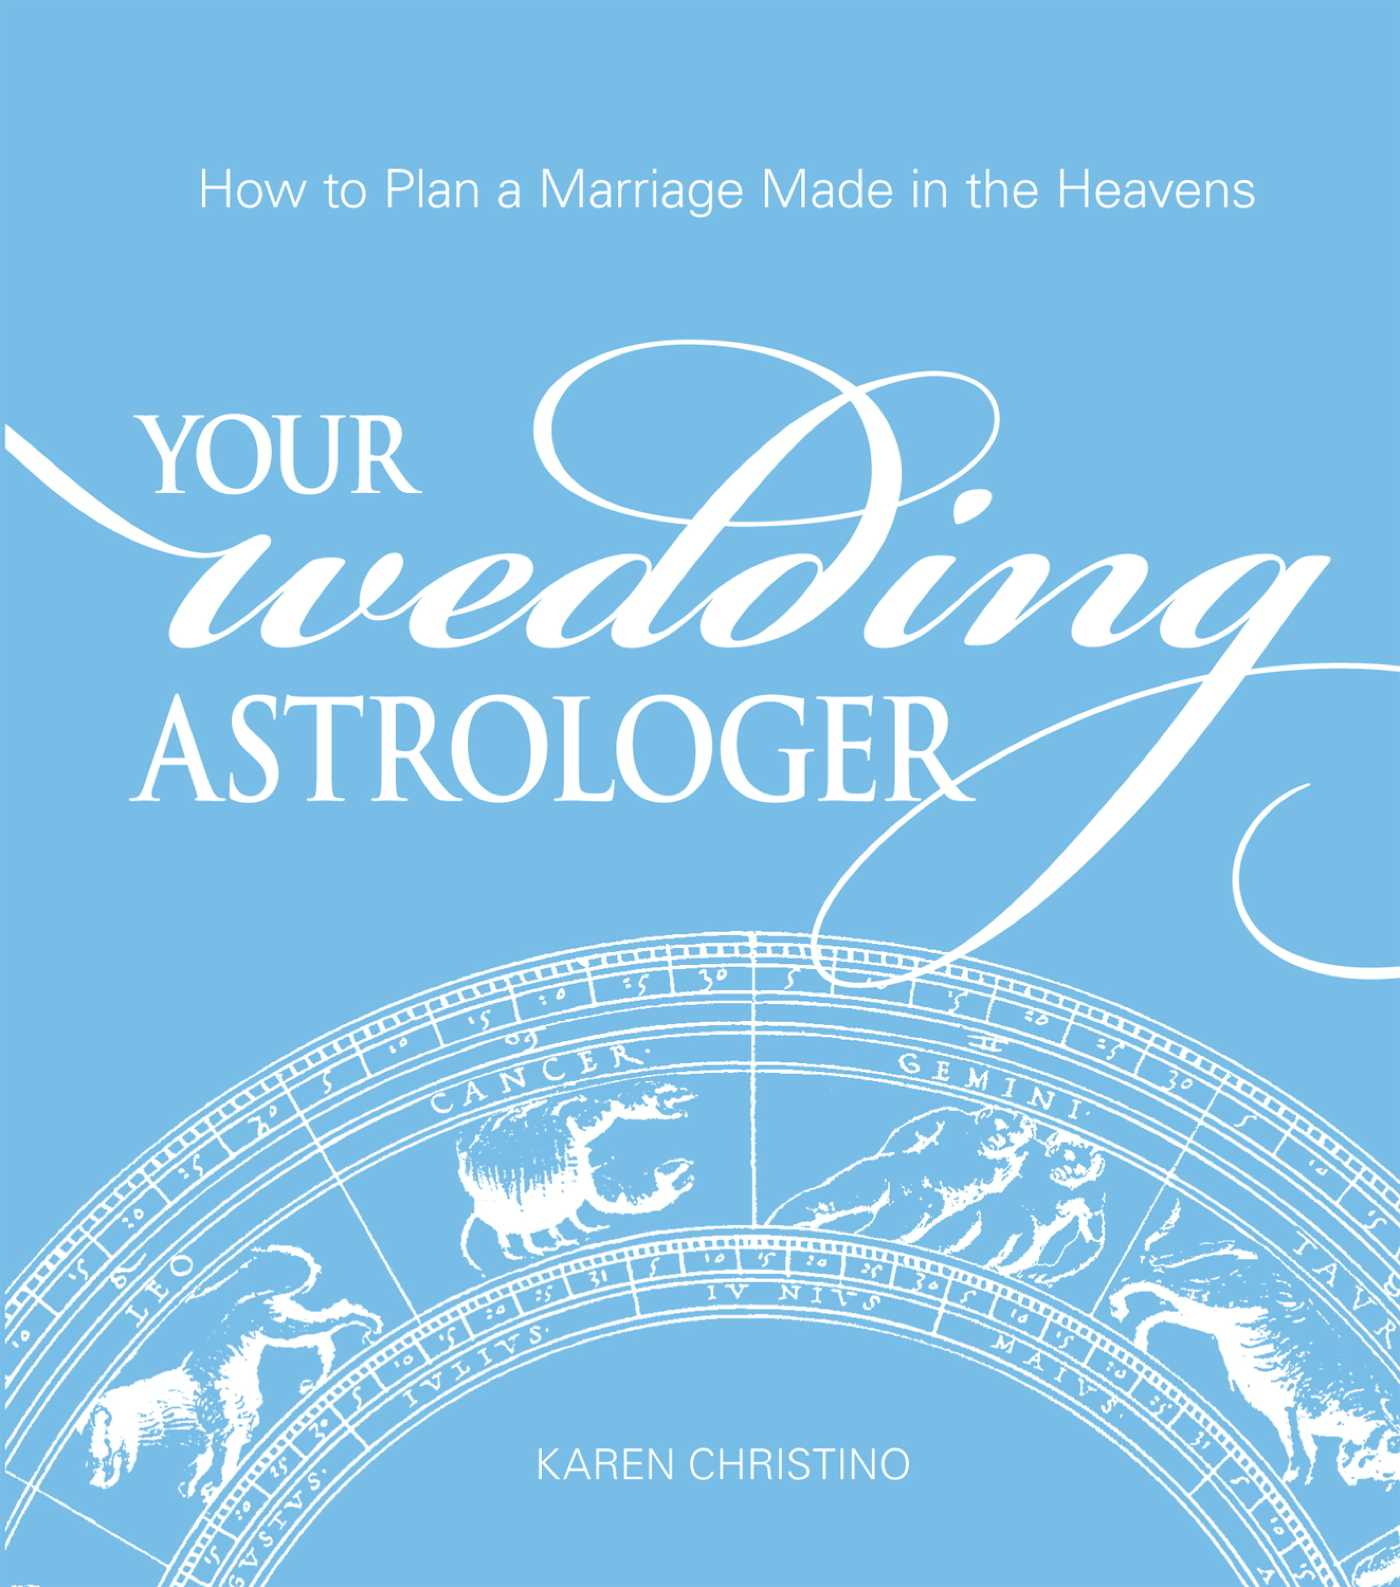 Your wedding astrologer 9781440515347 hr